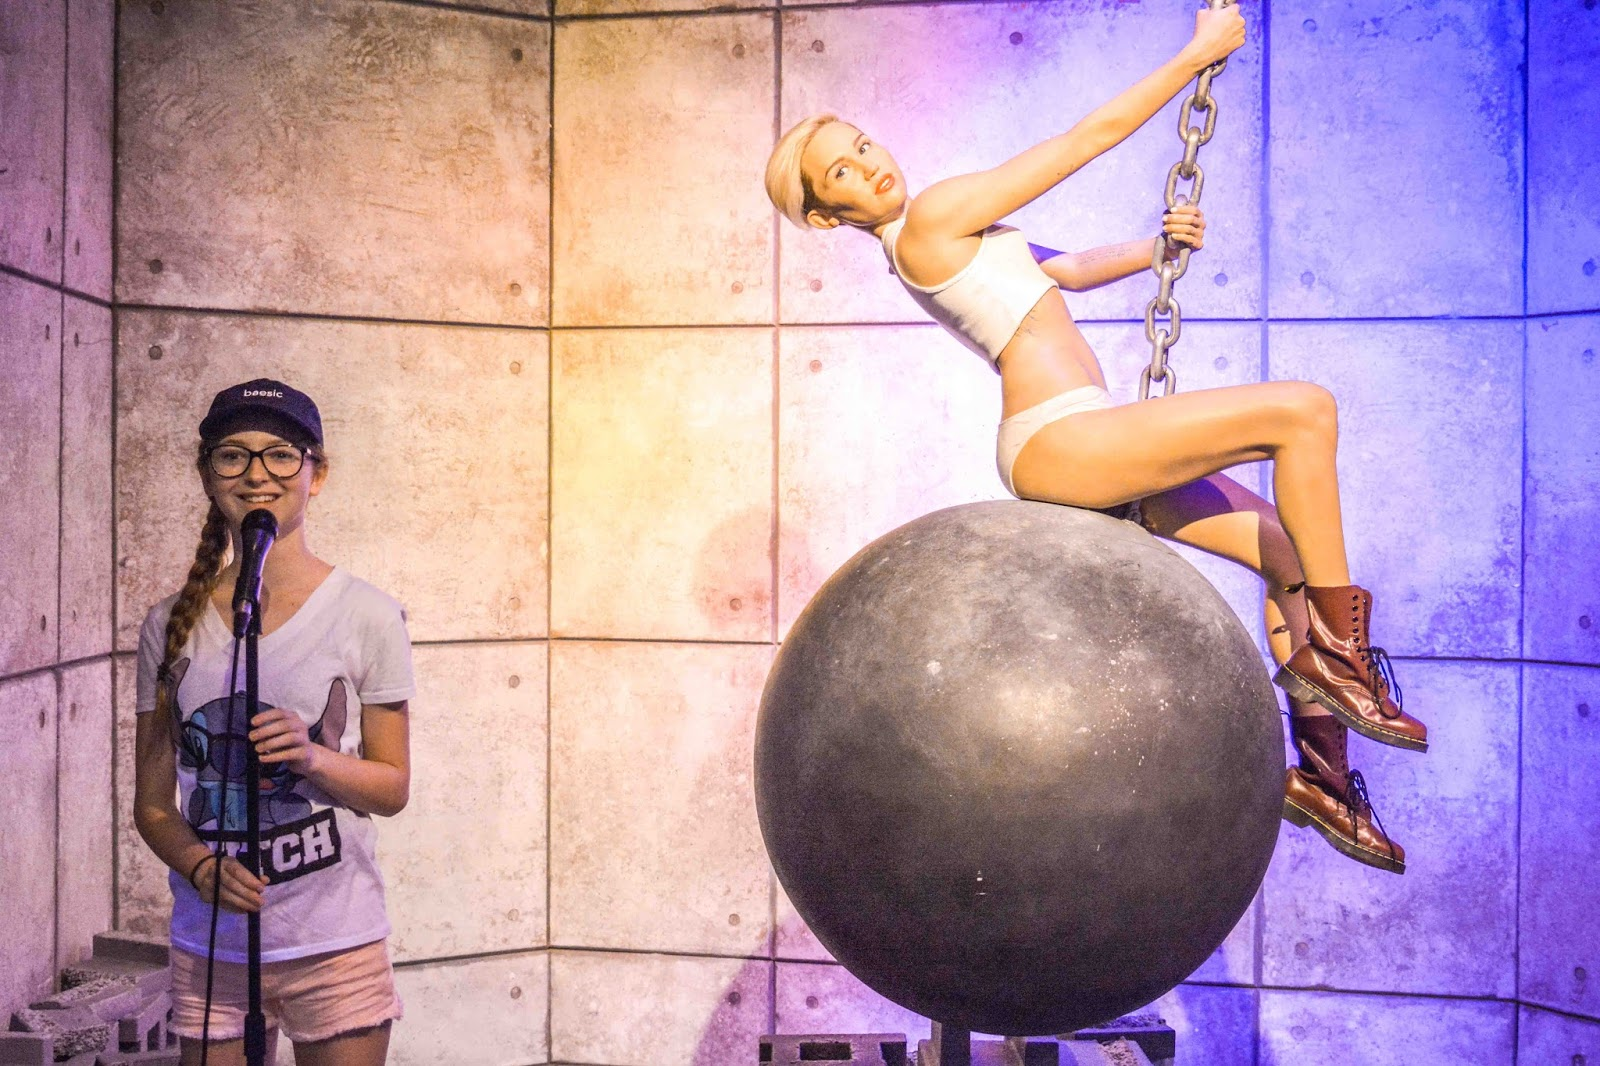 Miley Cyrus Madame Tussaud's